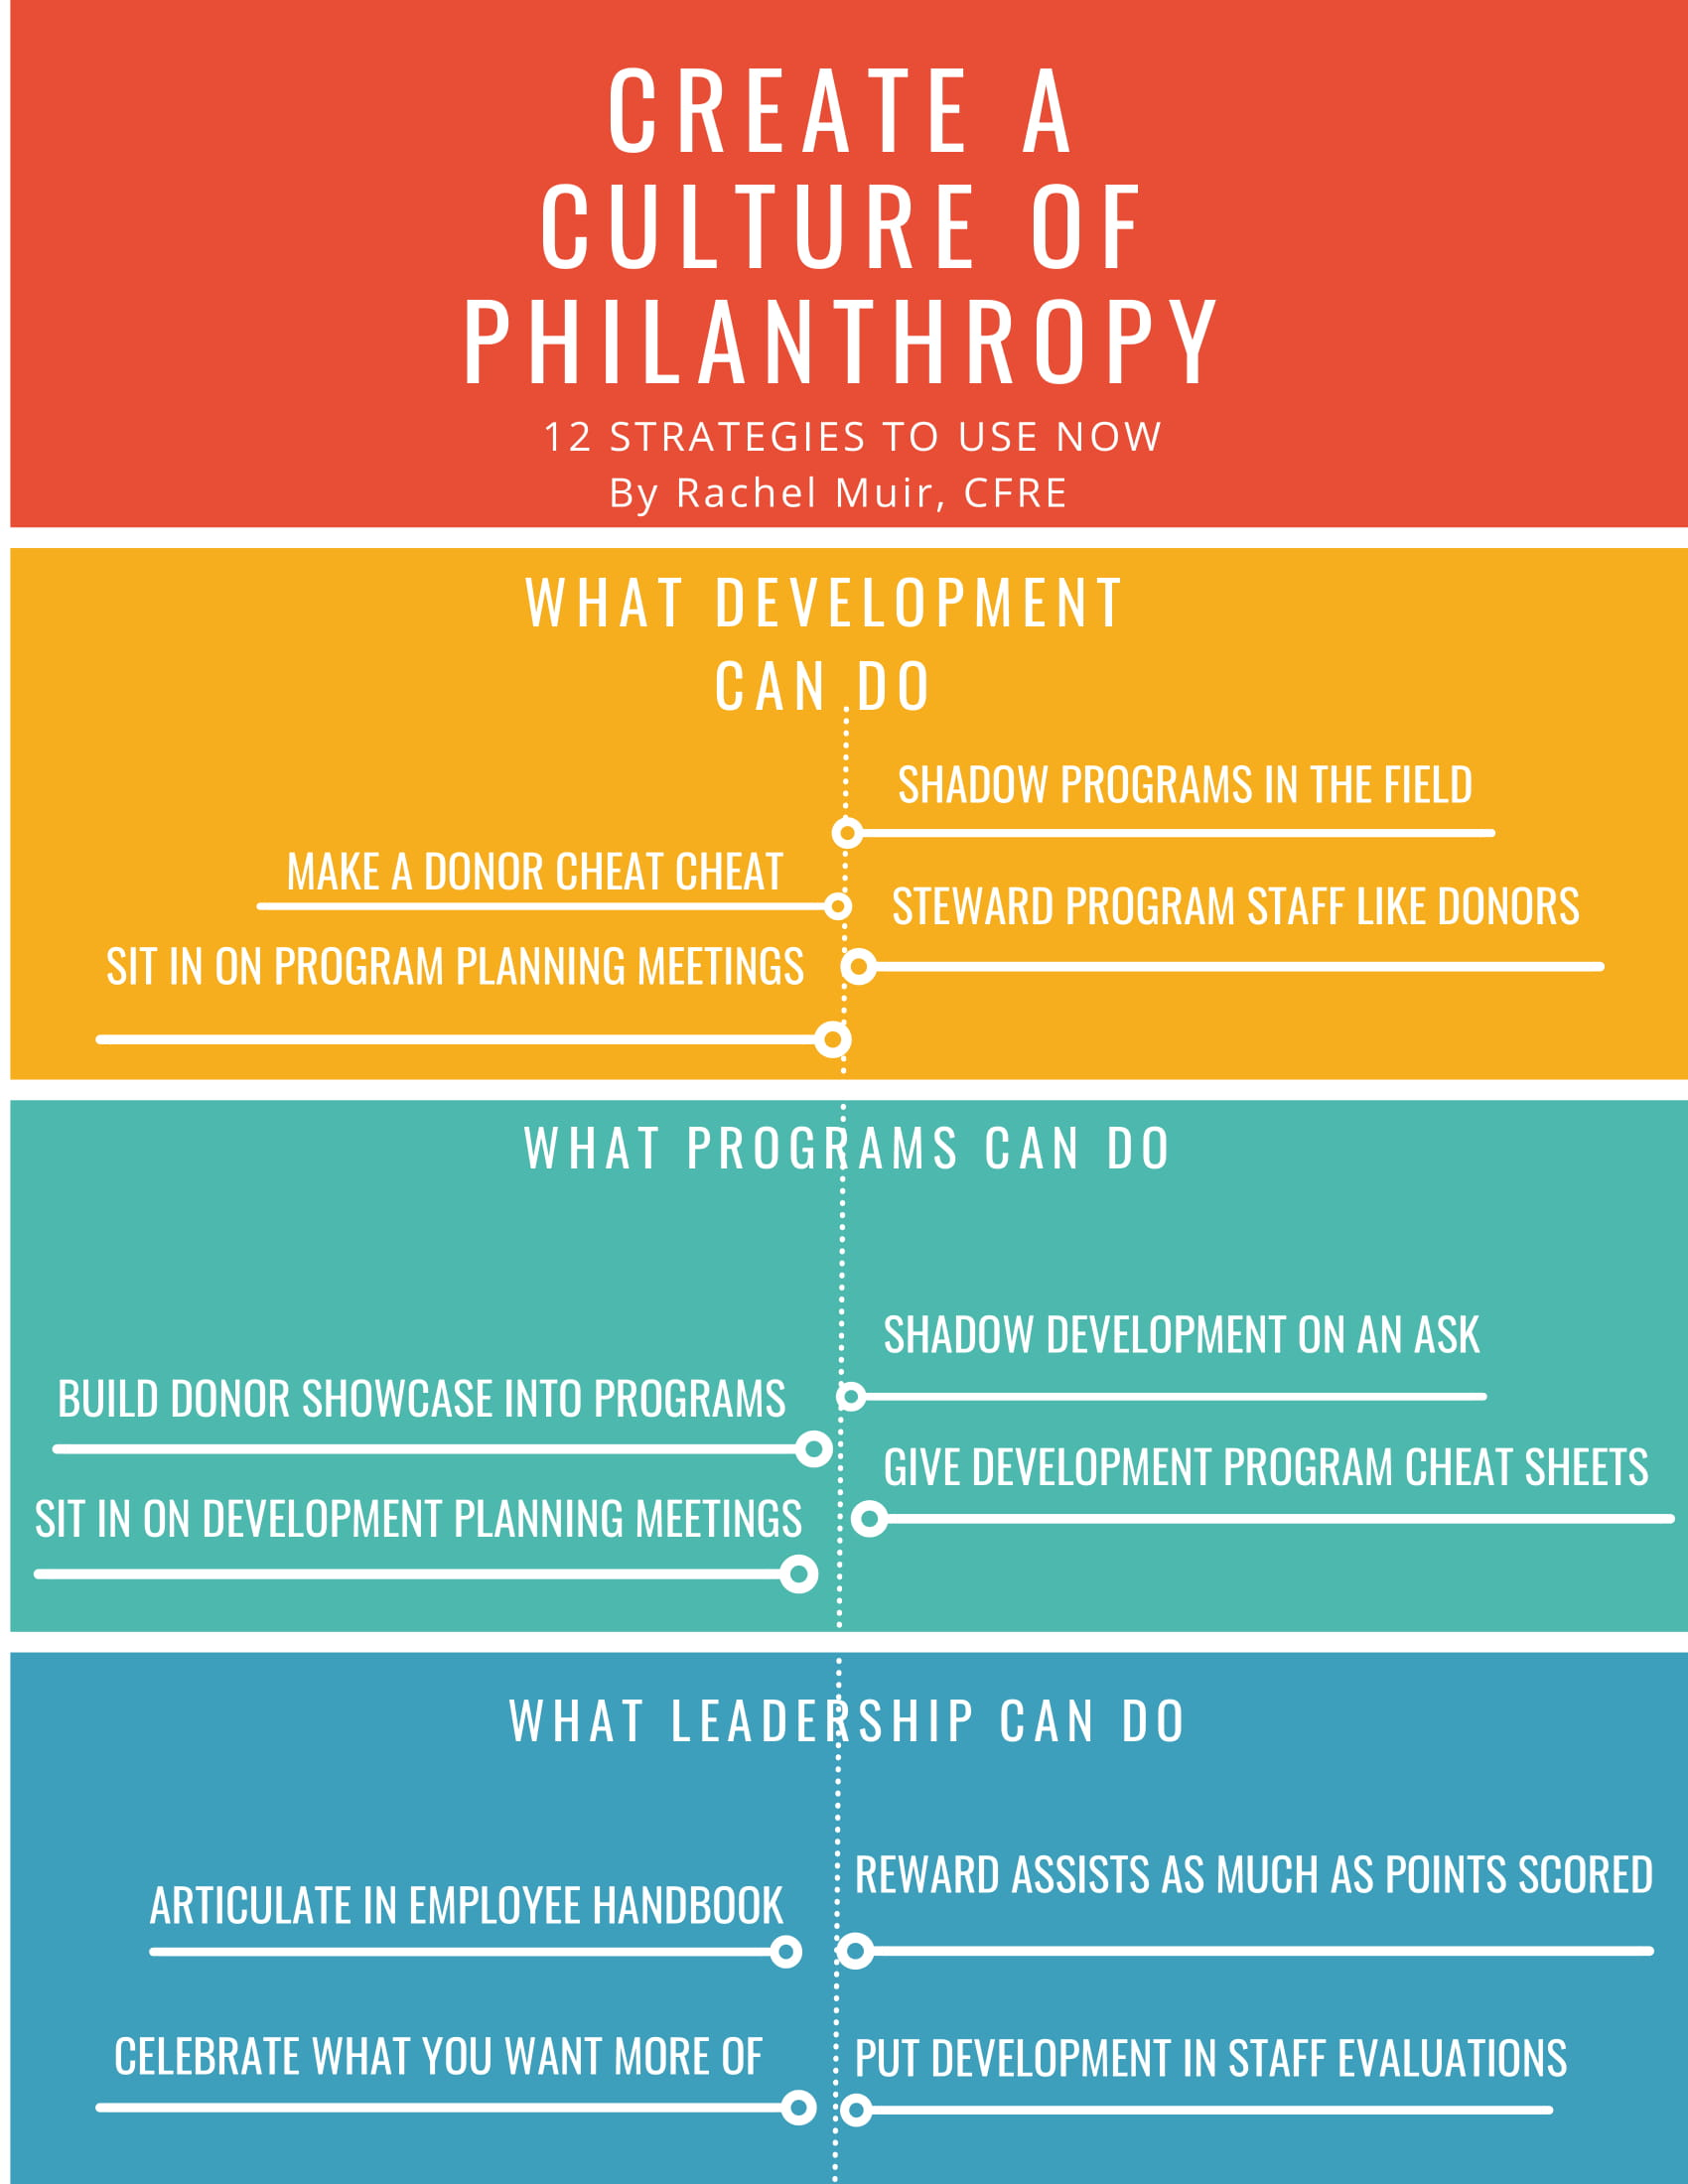 12 Strategies to Create a Culture of Philanthropy - Everyone in your organization is involved in fundraising. We all play different roles but we're all raising money, even if we never make a face to face solicitation! Discover 12 strategies programs, development and leadership can use now to build a thriving culture of philanthropy.